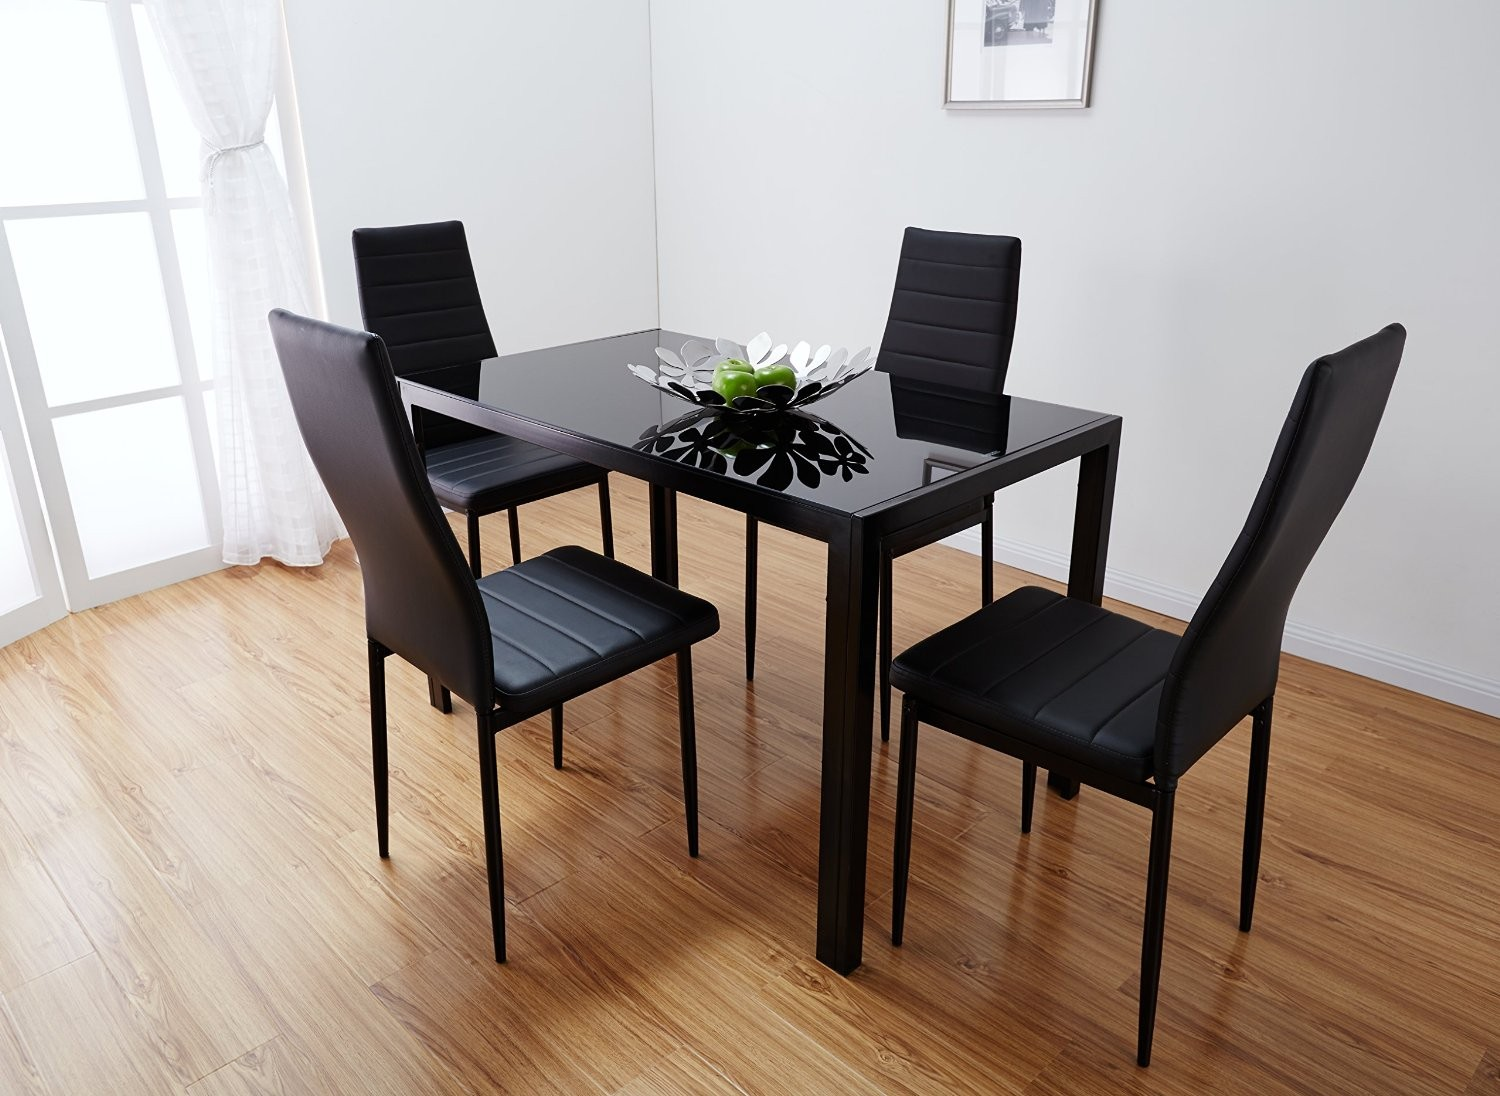 Choose Dark Glass Dining Table Set On Hardwood Flooring For Simple Room  With White Painted Wall